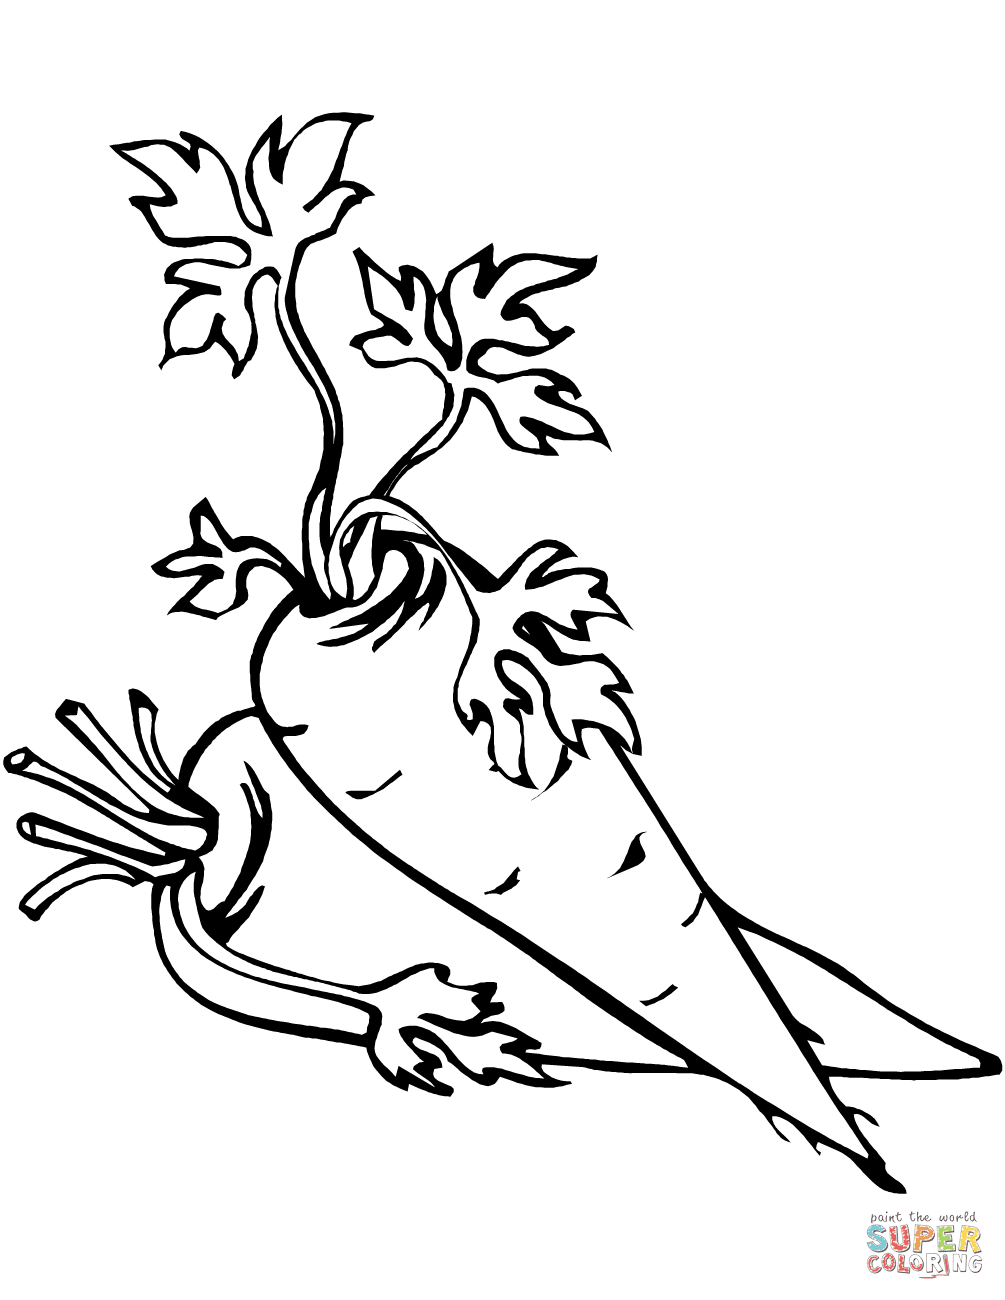 45 Coloring Pages Carrots For Free